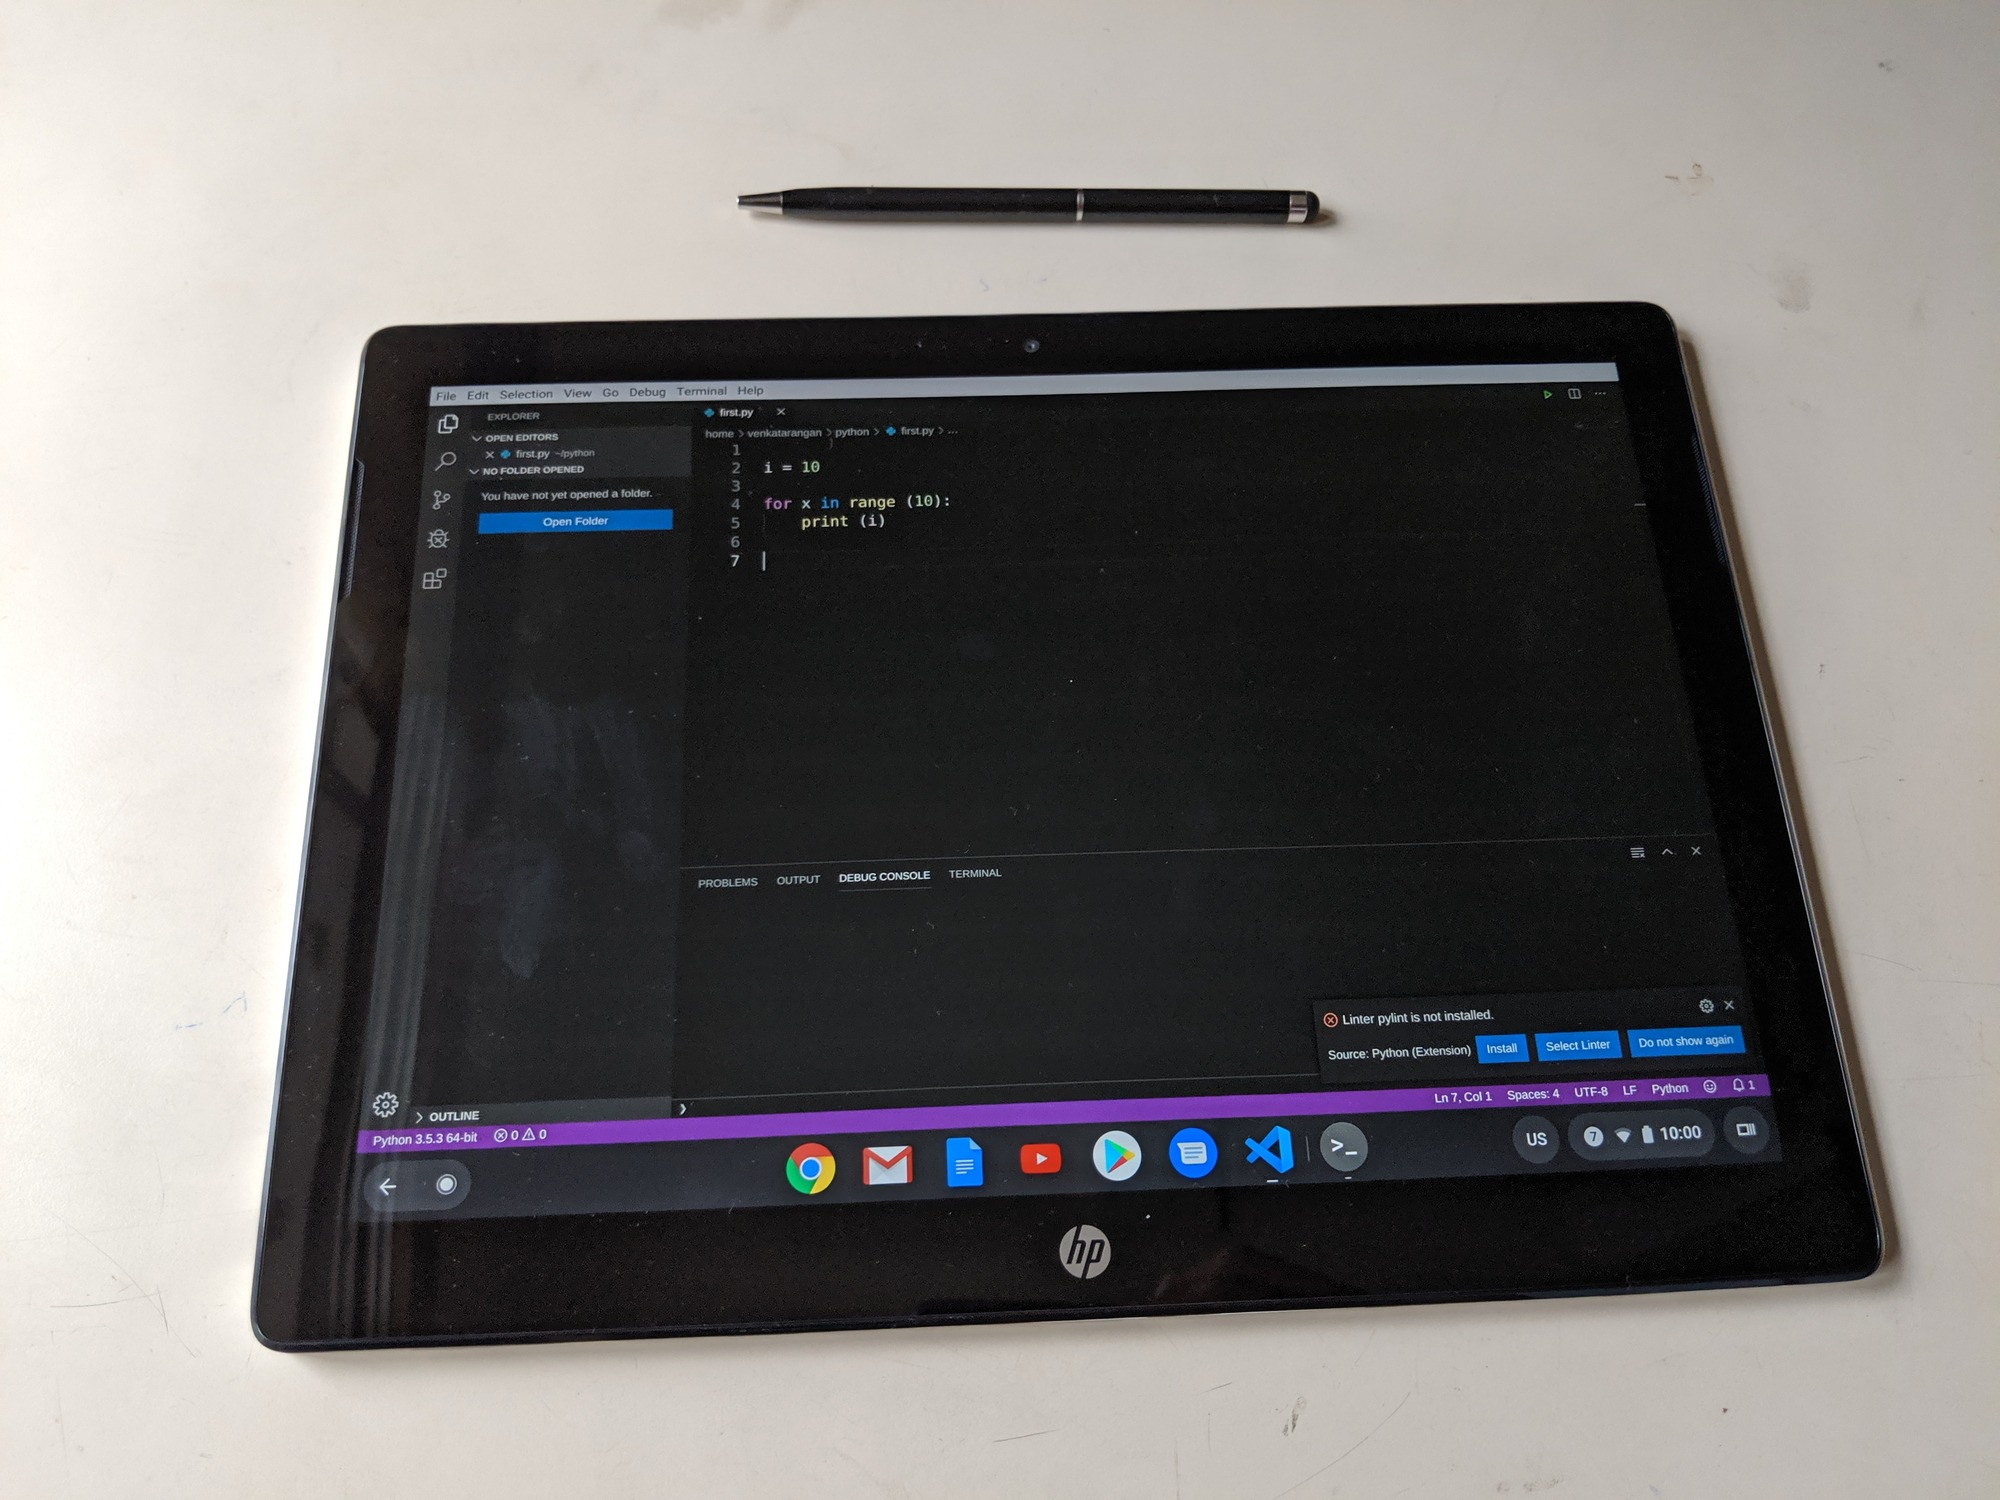 Visual Studio Code running a Python code on HP Chromebook x2